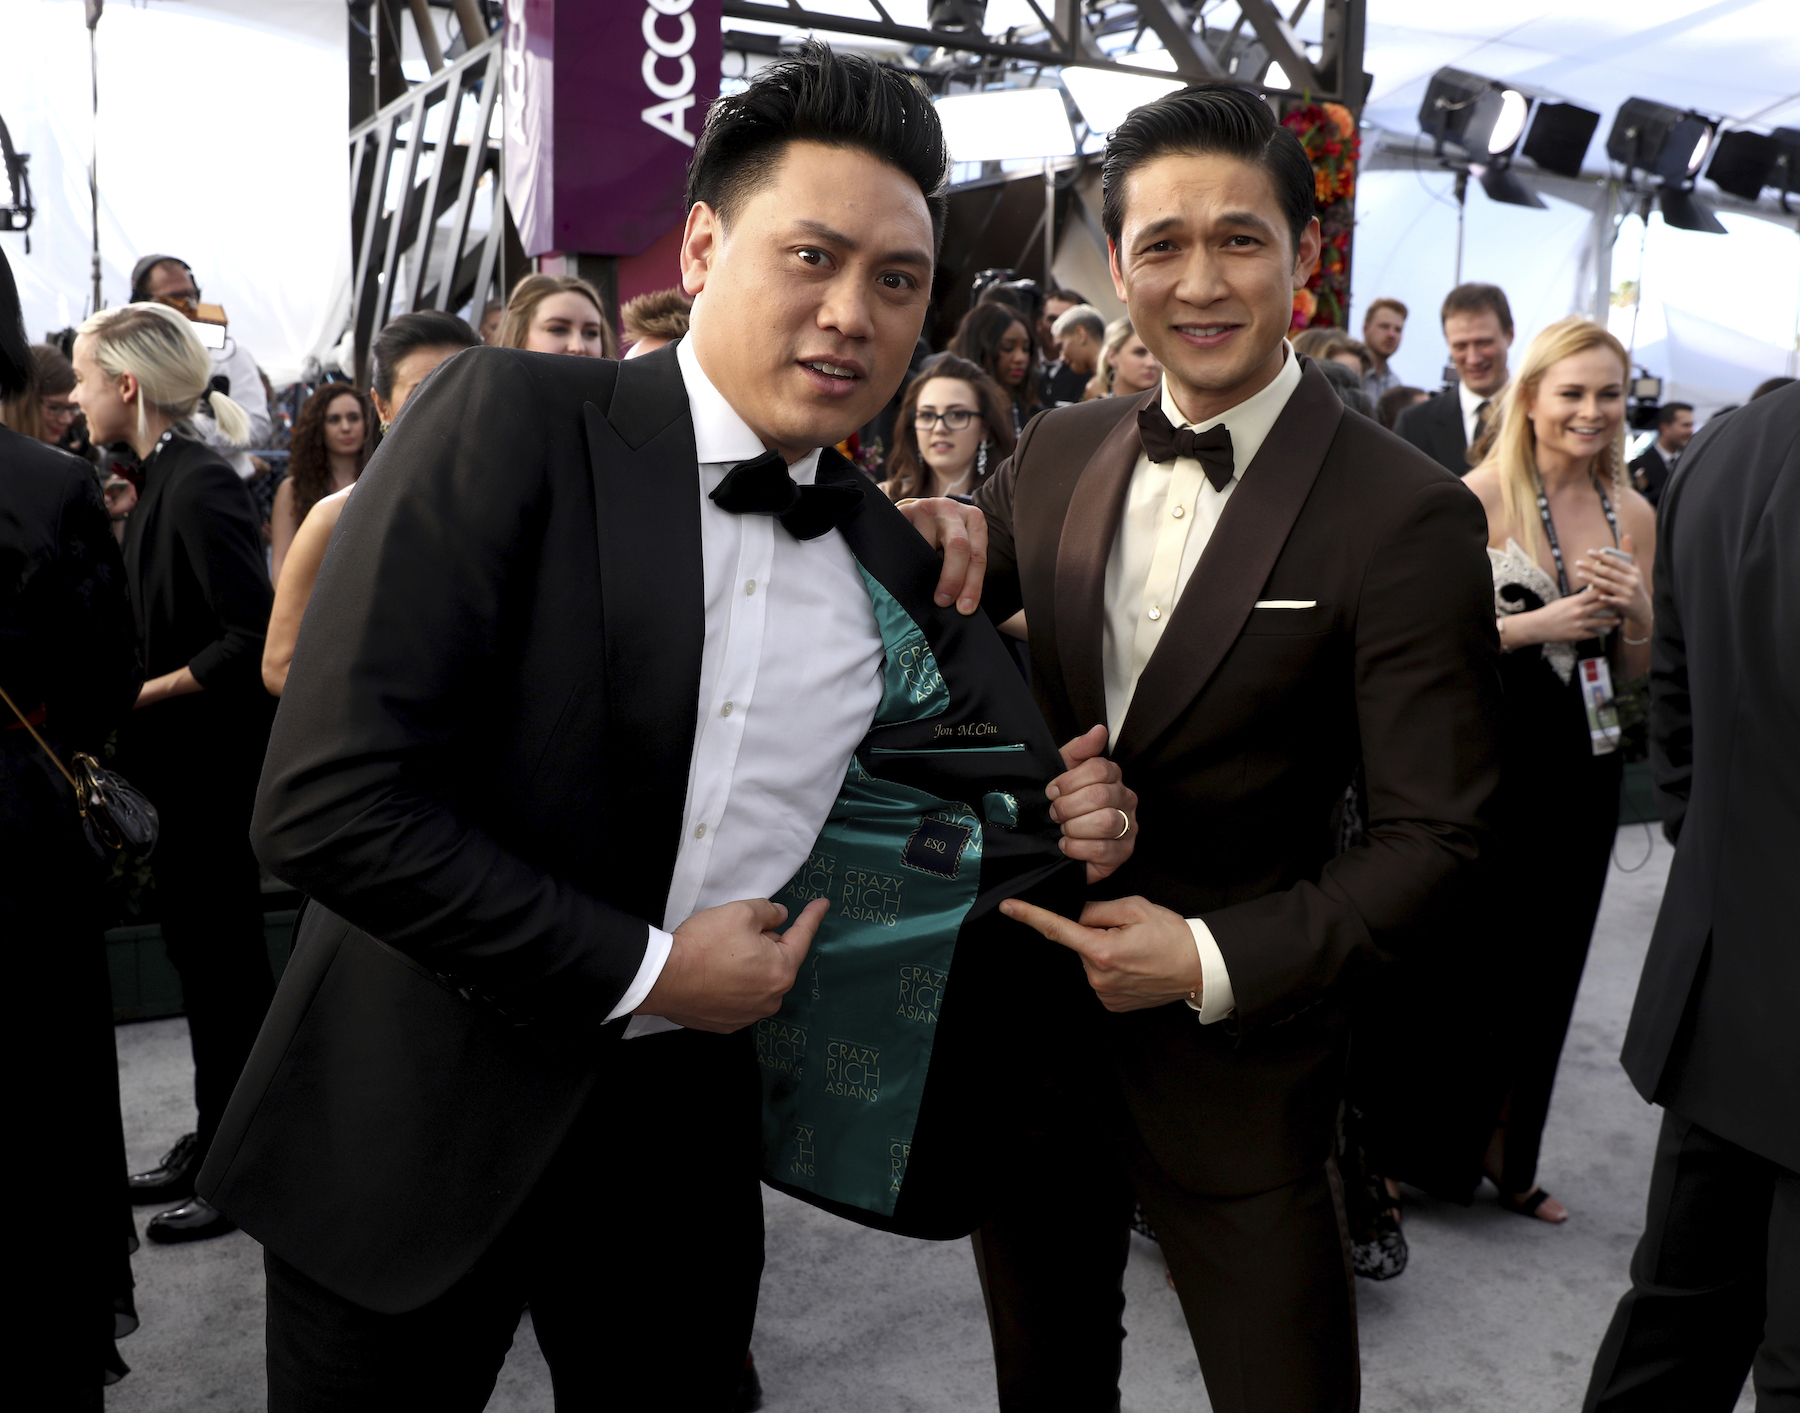 <div class='meta'><div class='origin-logo' data-origin='AP'></div><span class='caption-text' data-credit='Matt Sayles/Invision/AP'>Jon M. Chu, left, and Harry Shum Jr. arrive at the 25th annual Screen Actors Guild Awards at the Shrine Auditorium & Expo Hall on Sunday, Jan. 27, 2019, in Los Angeles.</span></div>